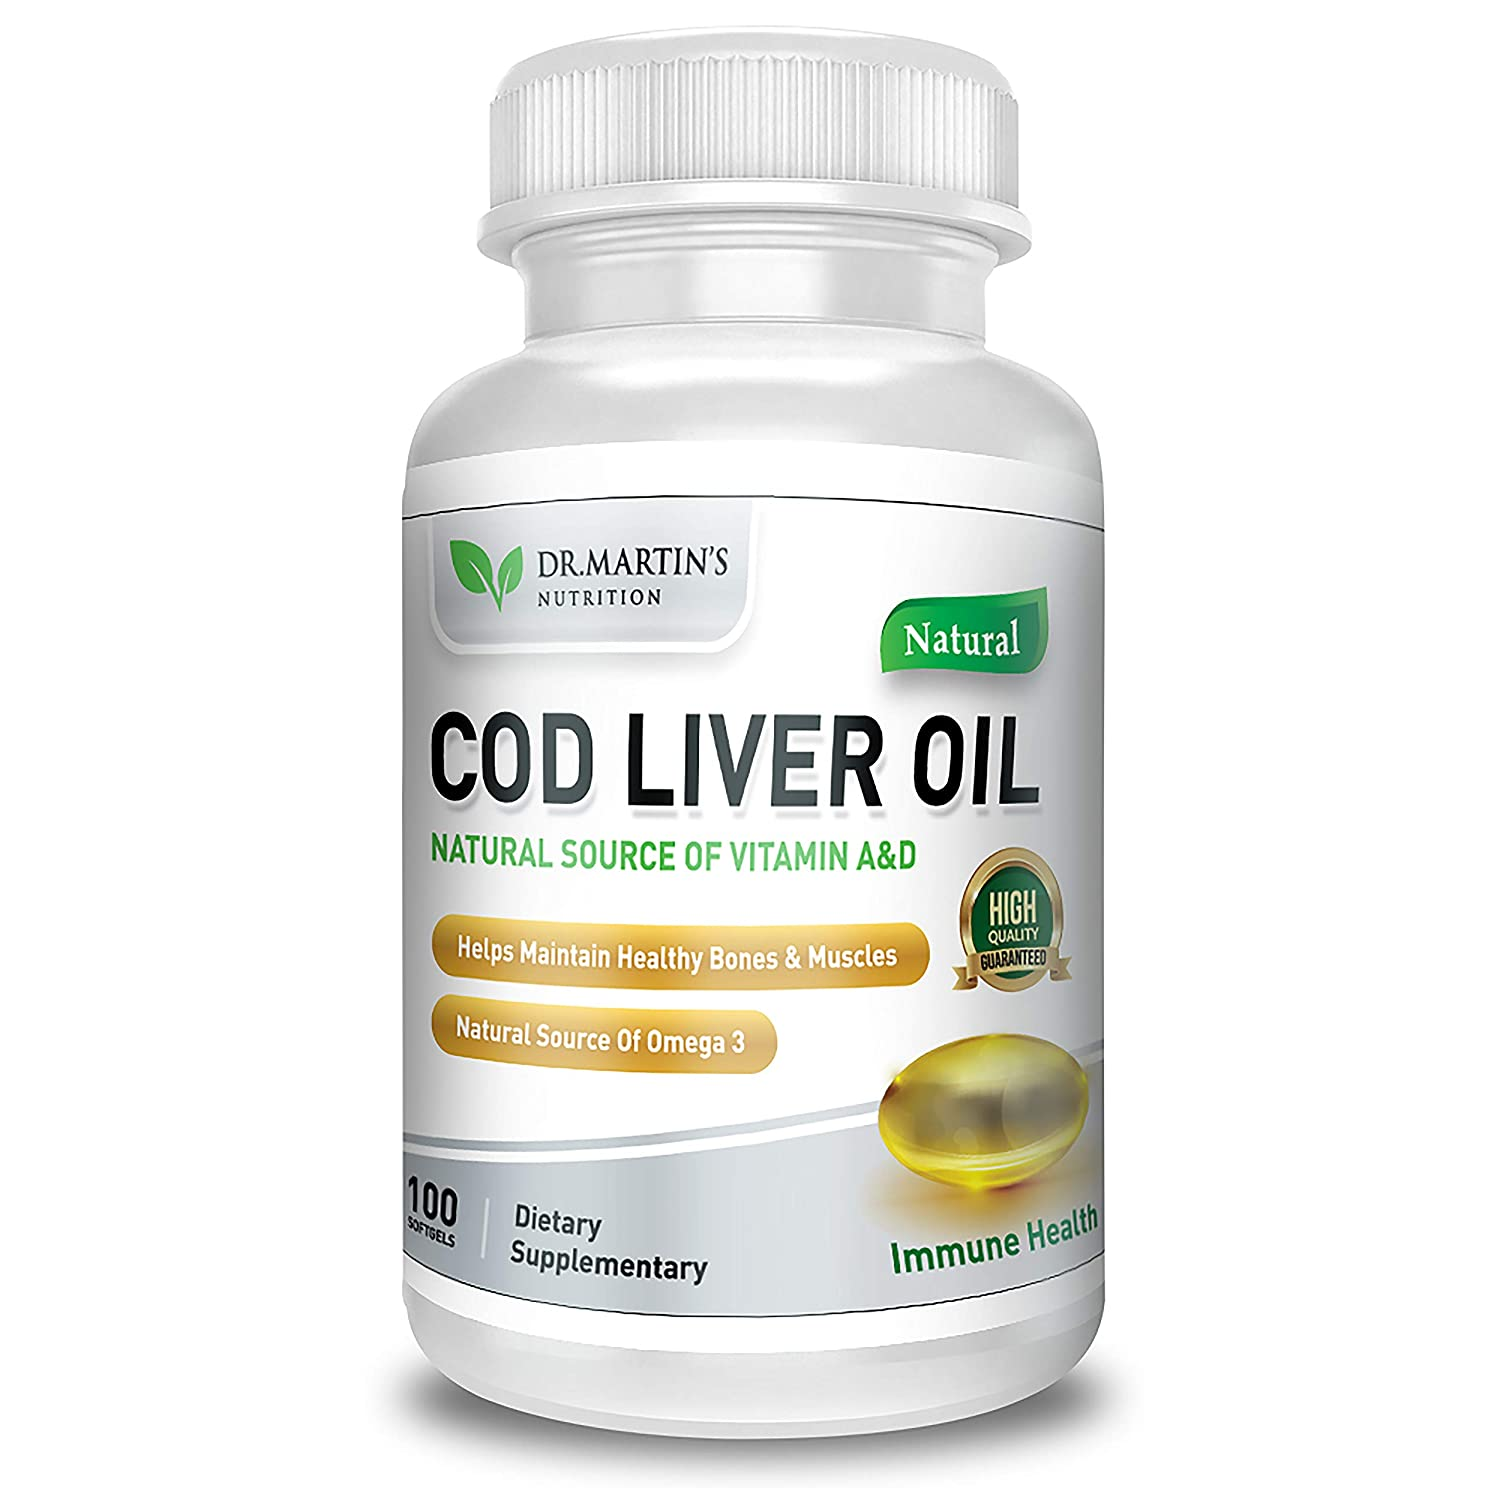 COD LIVER OIL | 100 Softgels | Natural Source Of Omega 3 Fatty Acids